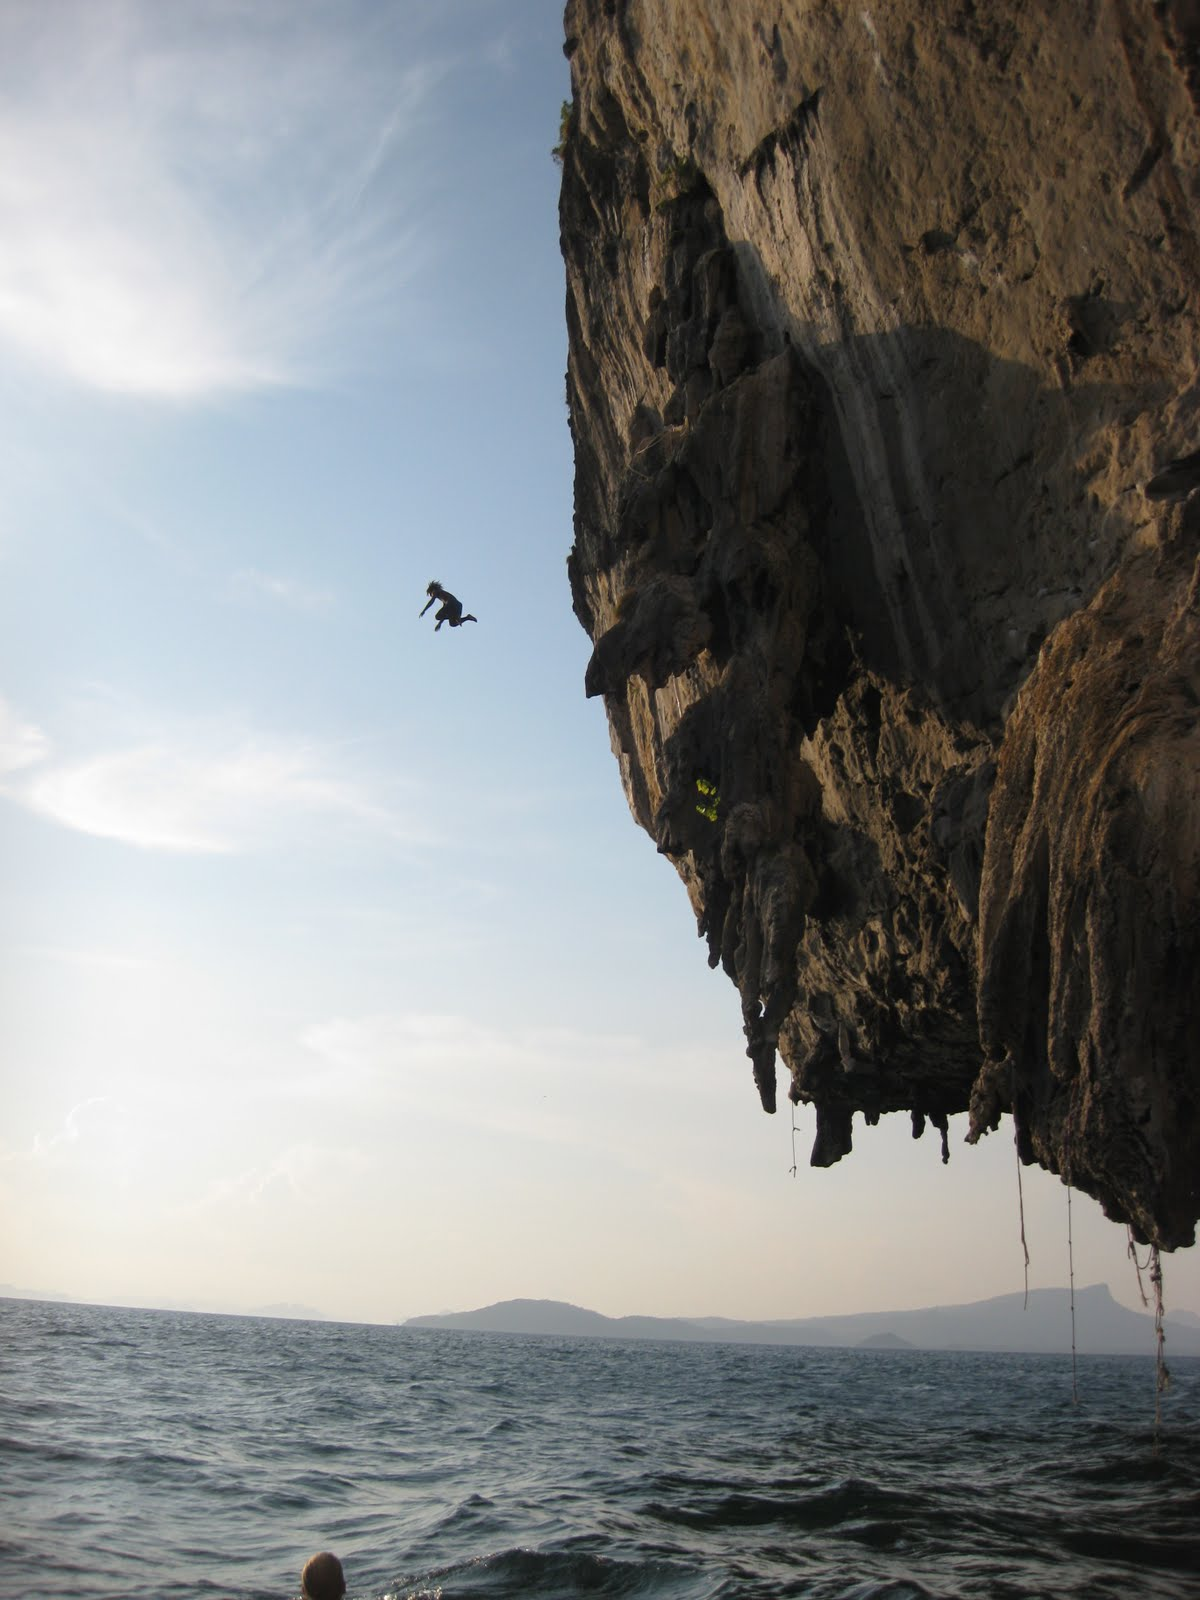 crazy Thai guide jumping into water